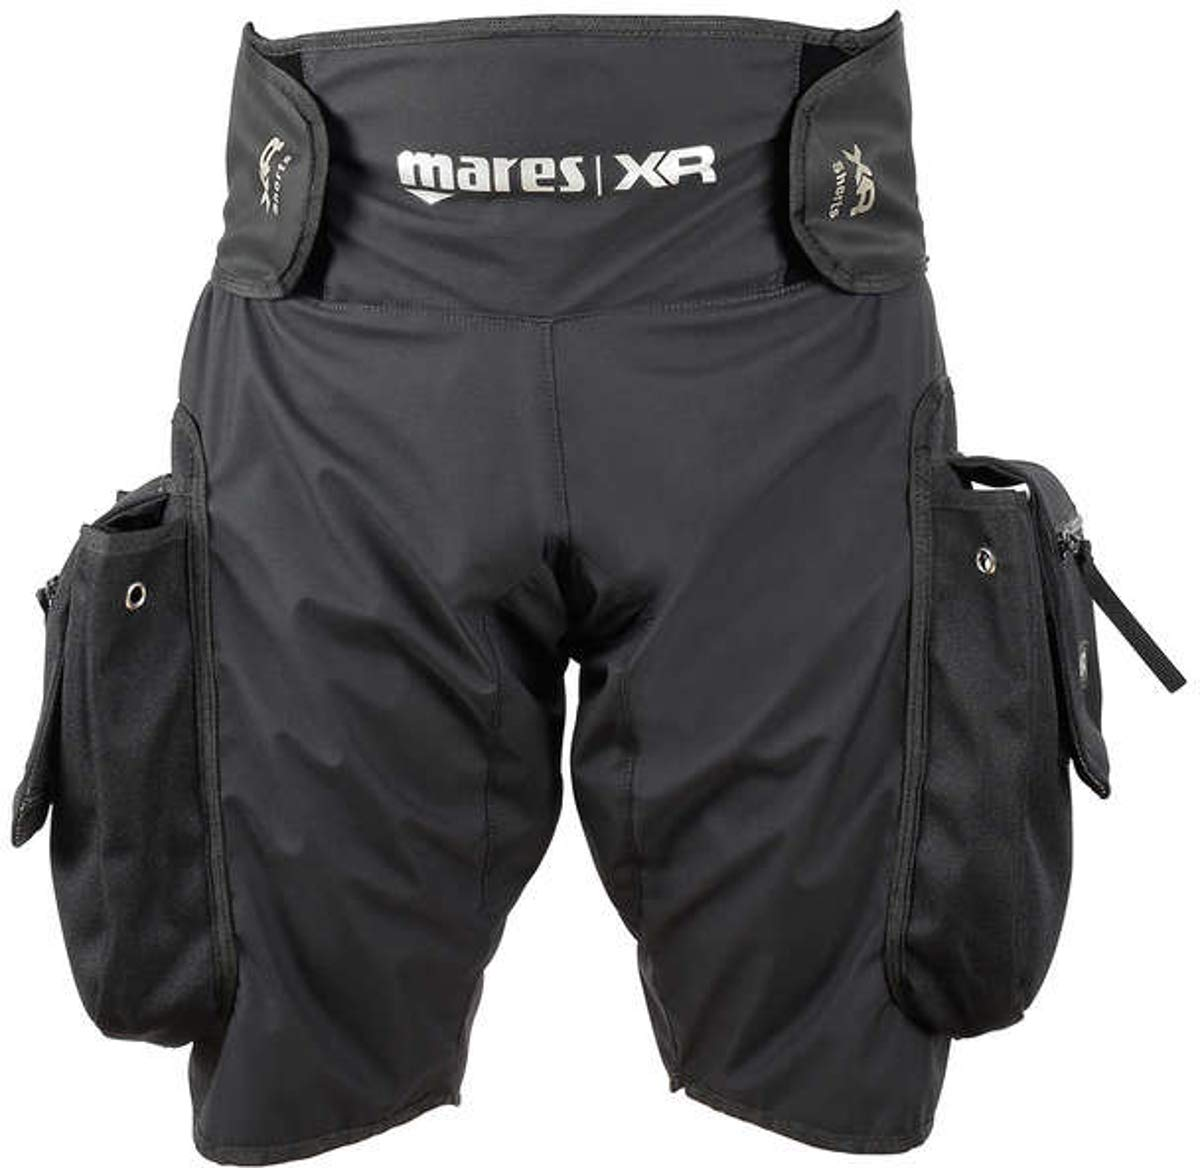 Mares XR Tek Shorts - Small